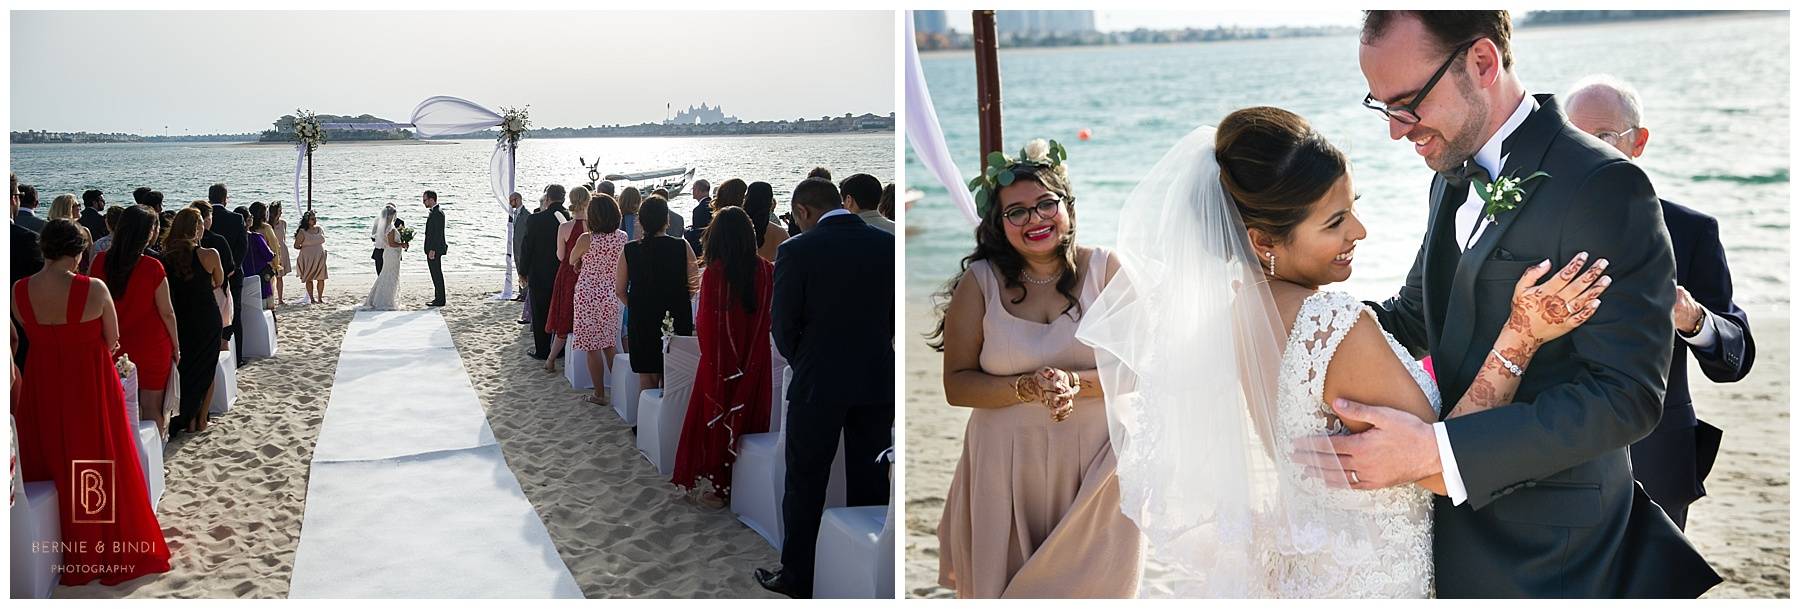 Tom & Rasha Anantara Wedding_0146.jpg